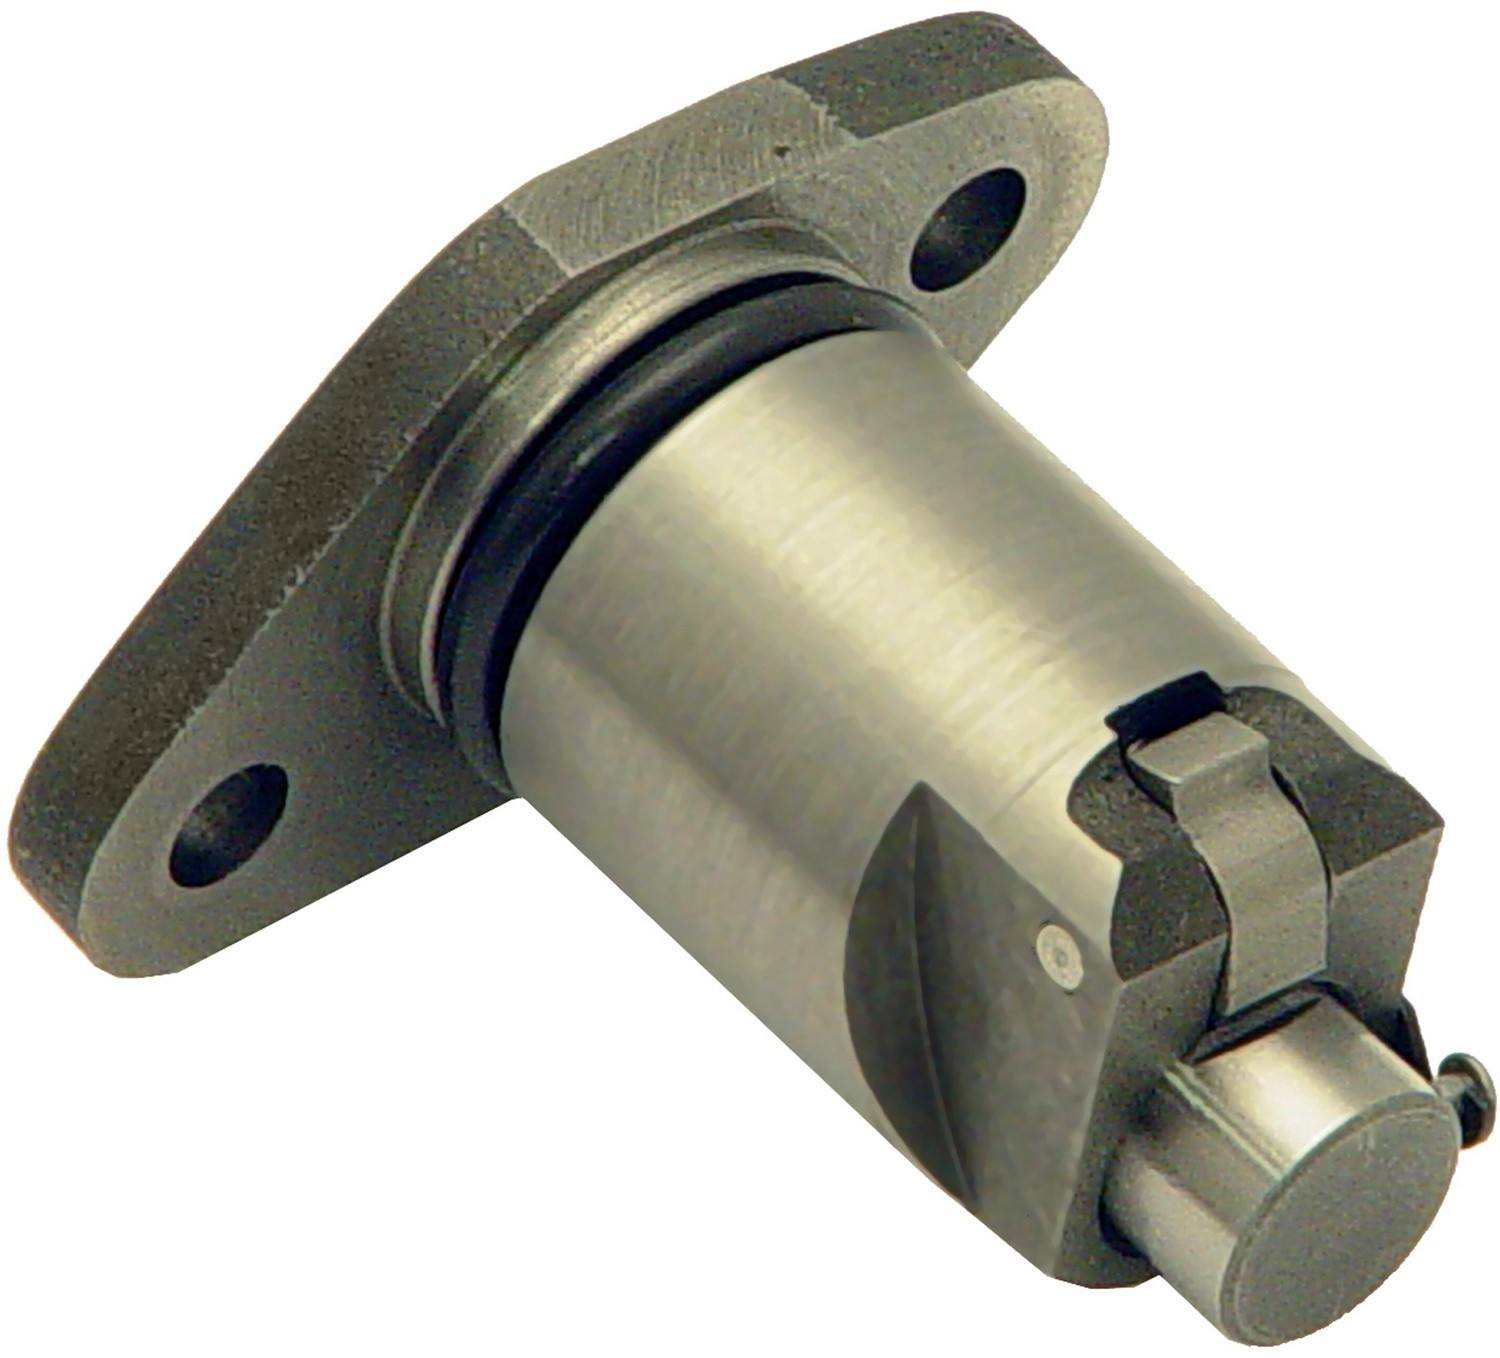 DORMAN OE SOLUTIONS - Engine Timing Chain Tensioner - DRE 420-110